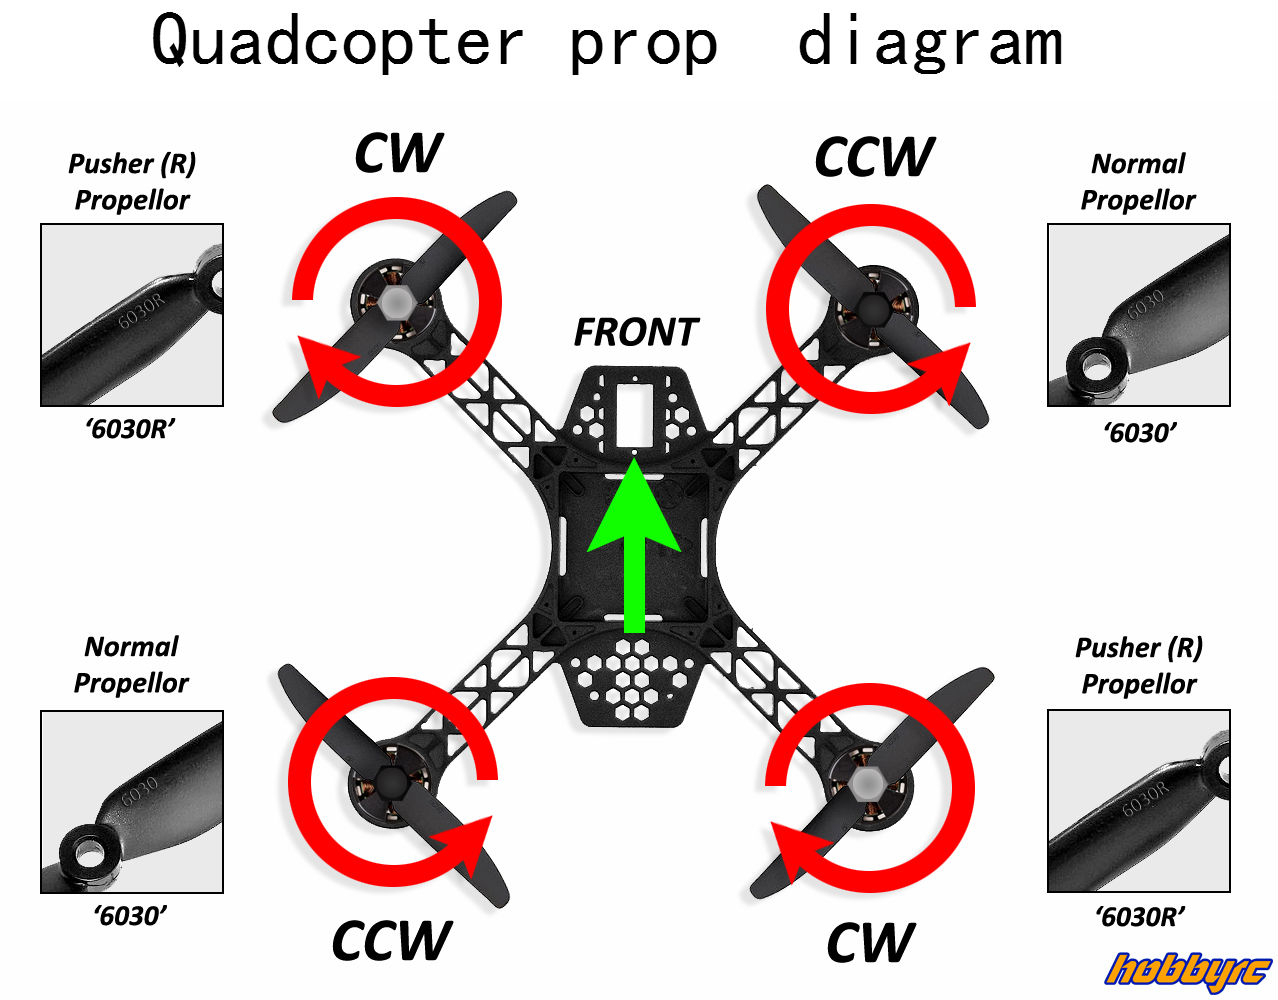 Quadcopter Wiring Diagram Manual | Wiring Diagram - Pixhawk Wiring Diagram